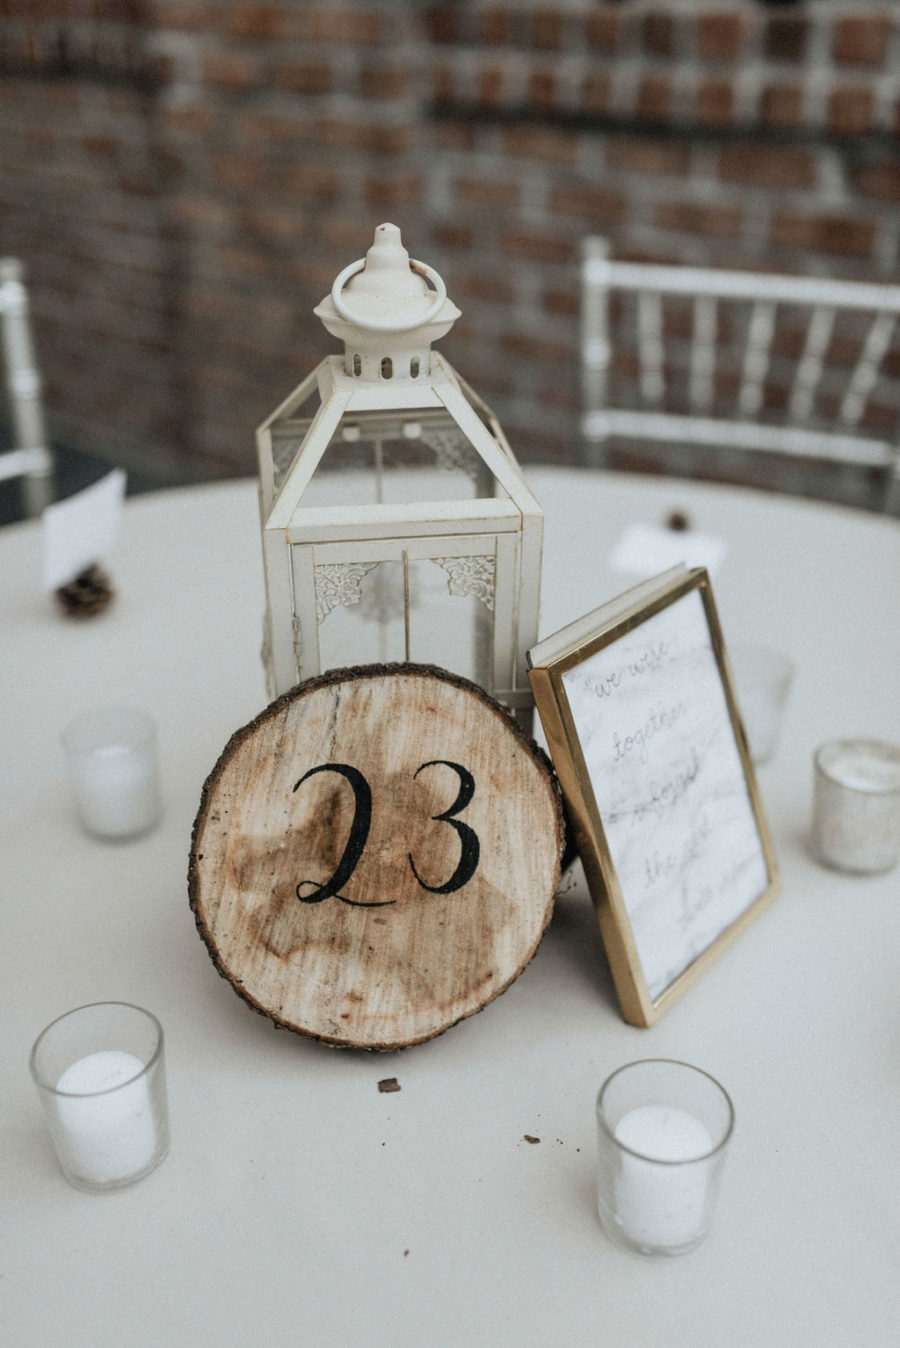 Lantern wedding centerpieces: Magical Winter Wedding by Meghan Melia Photography featured on Nashville Bride Guide!